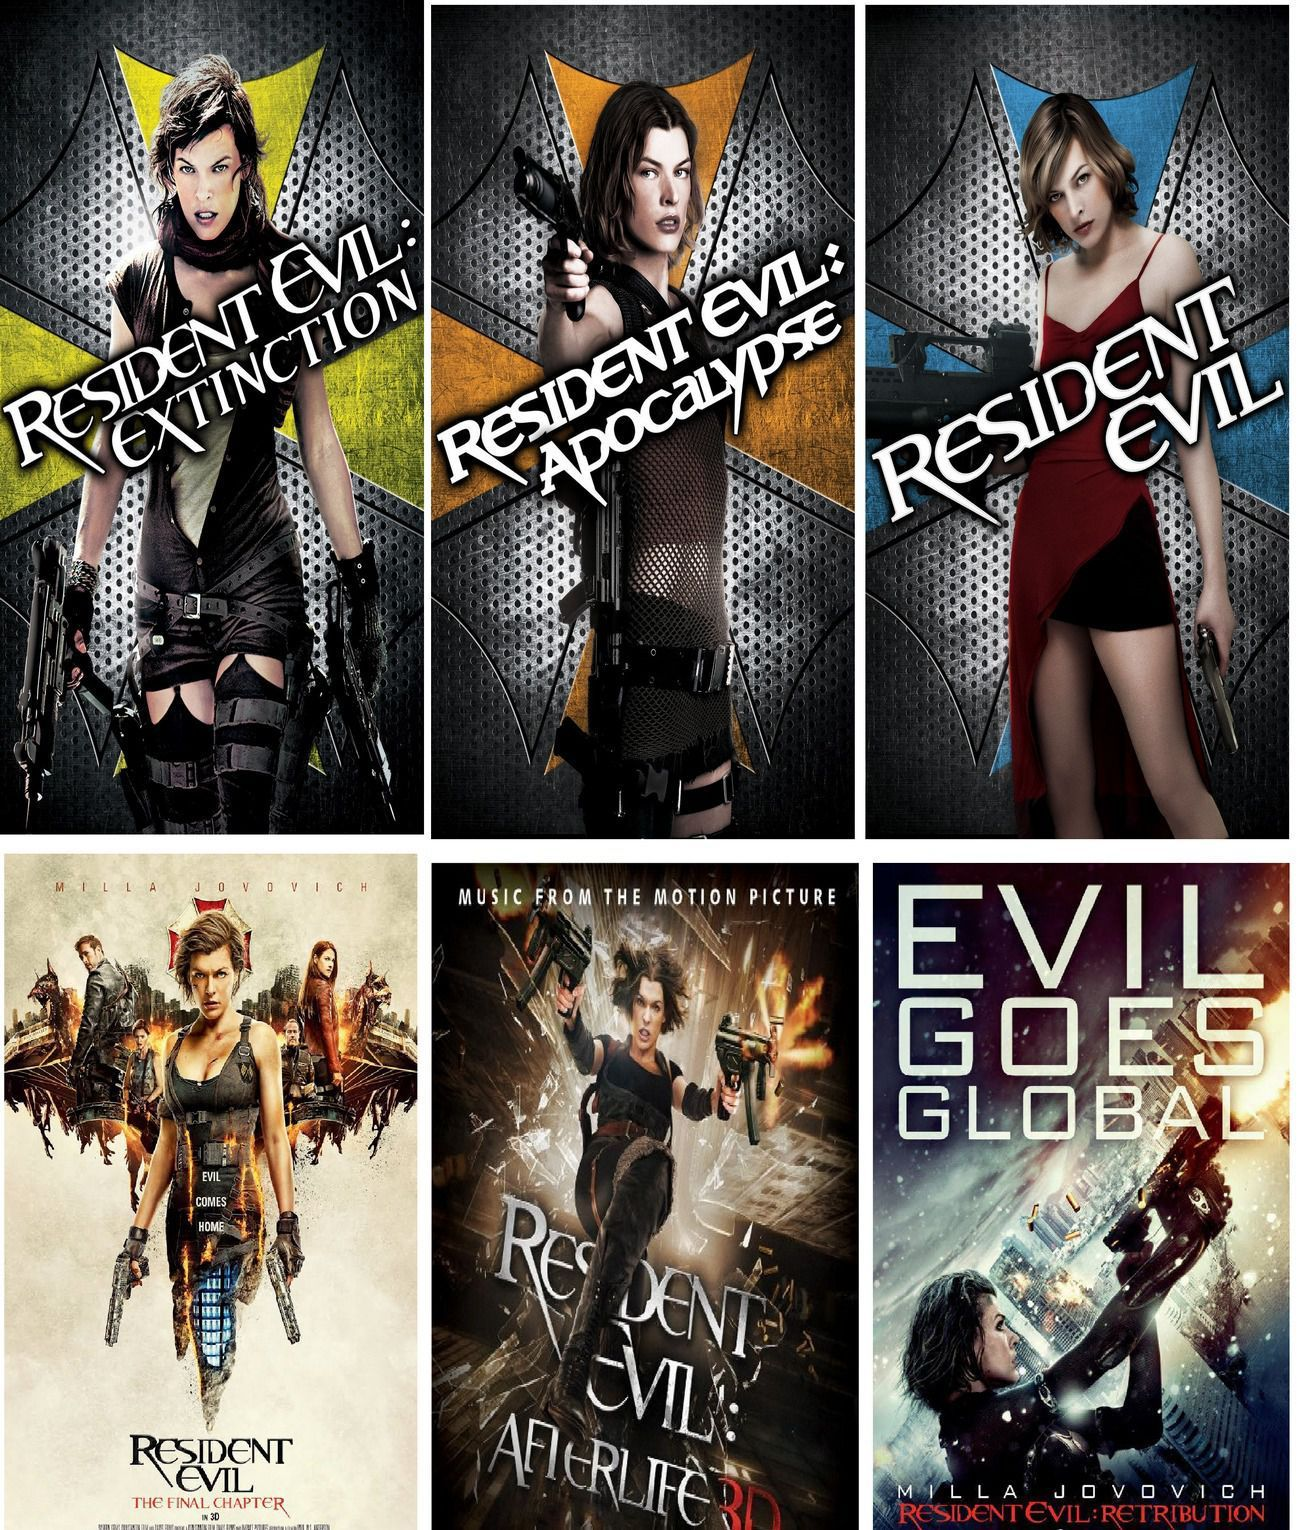 Resident Evil Movies 2002 2017 Collection Tamil Dubbed Hd